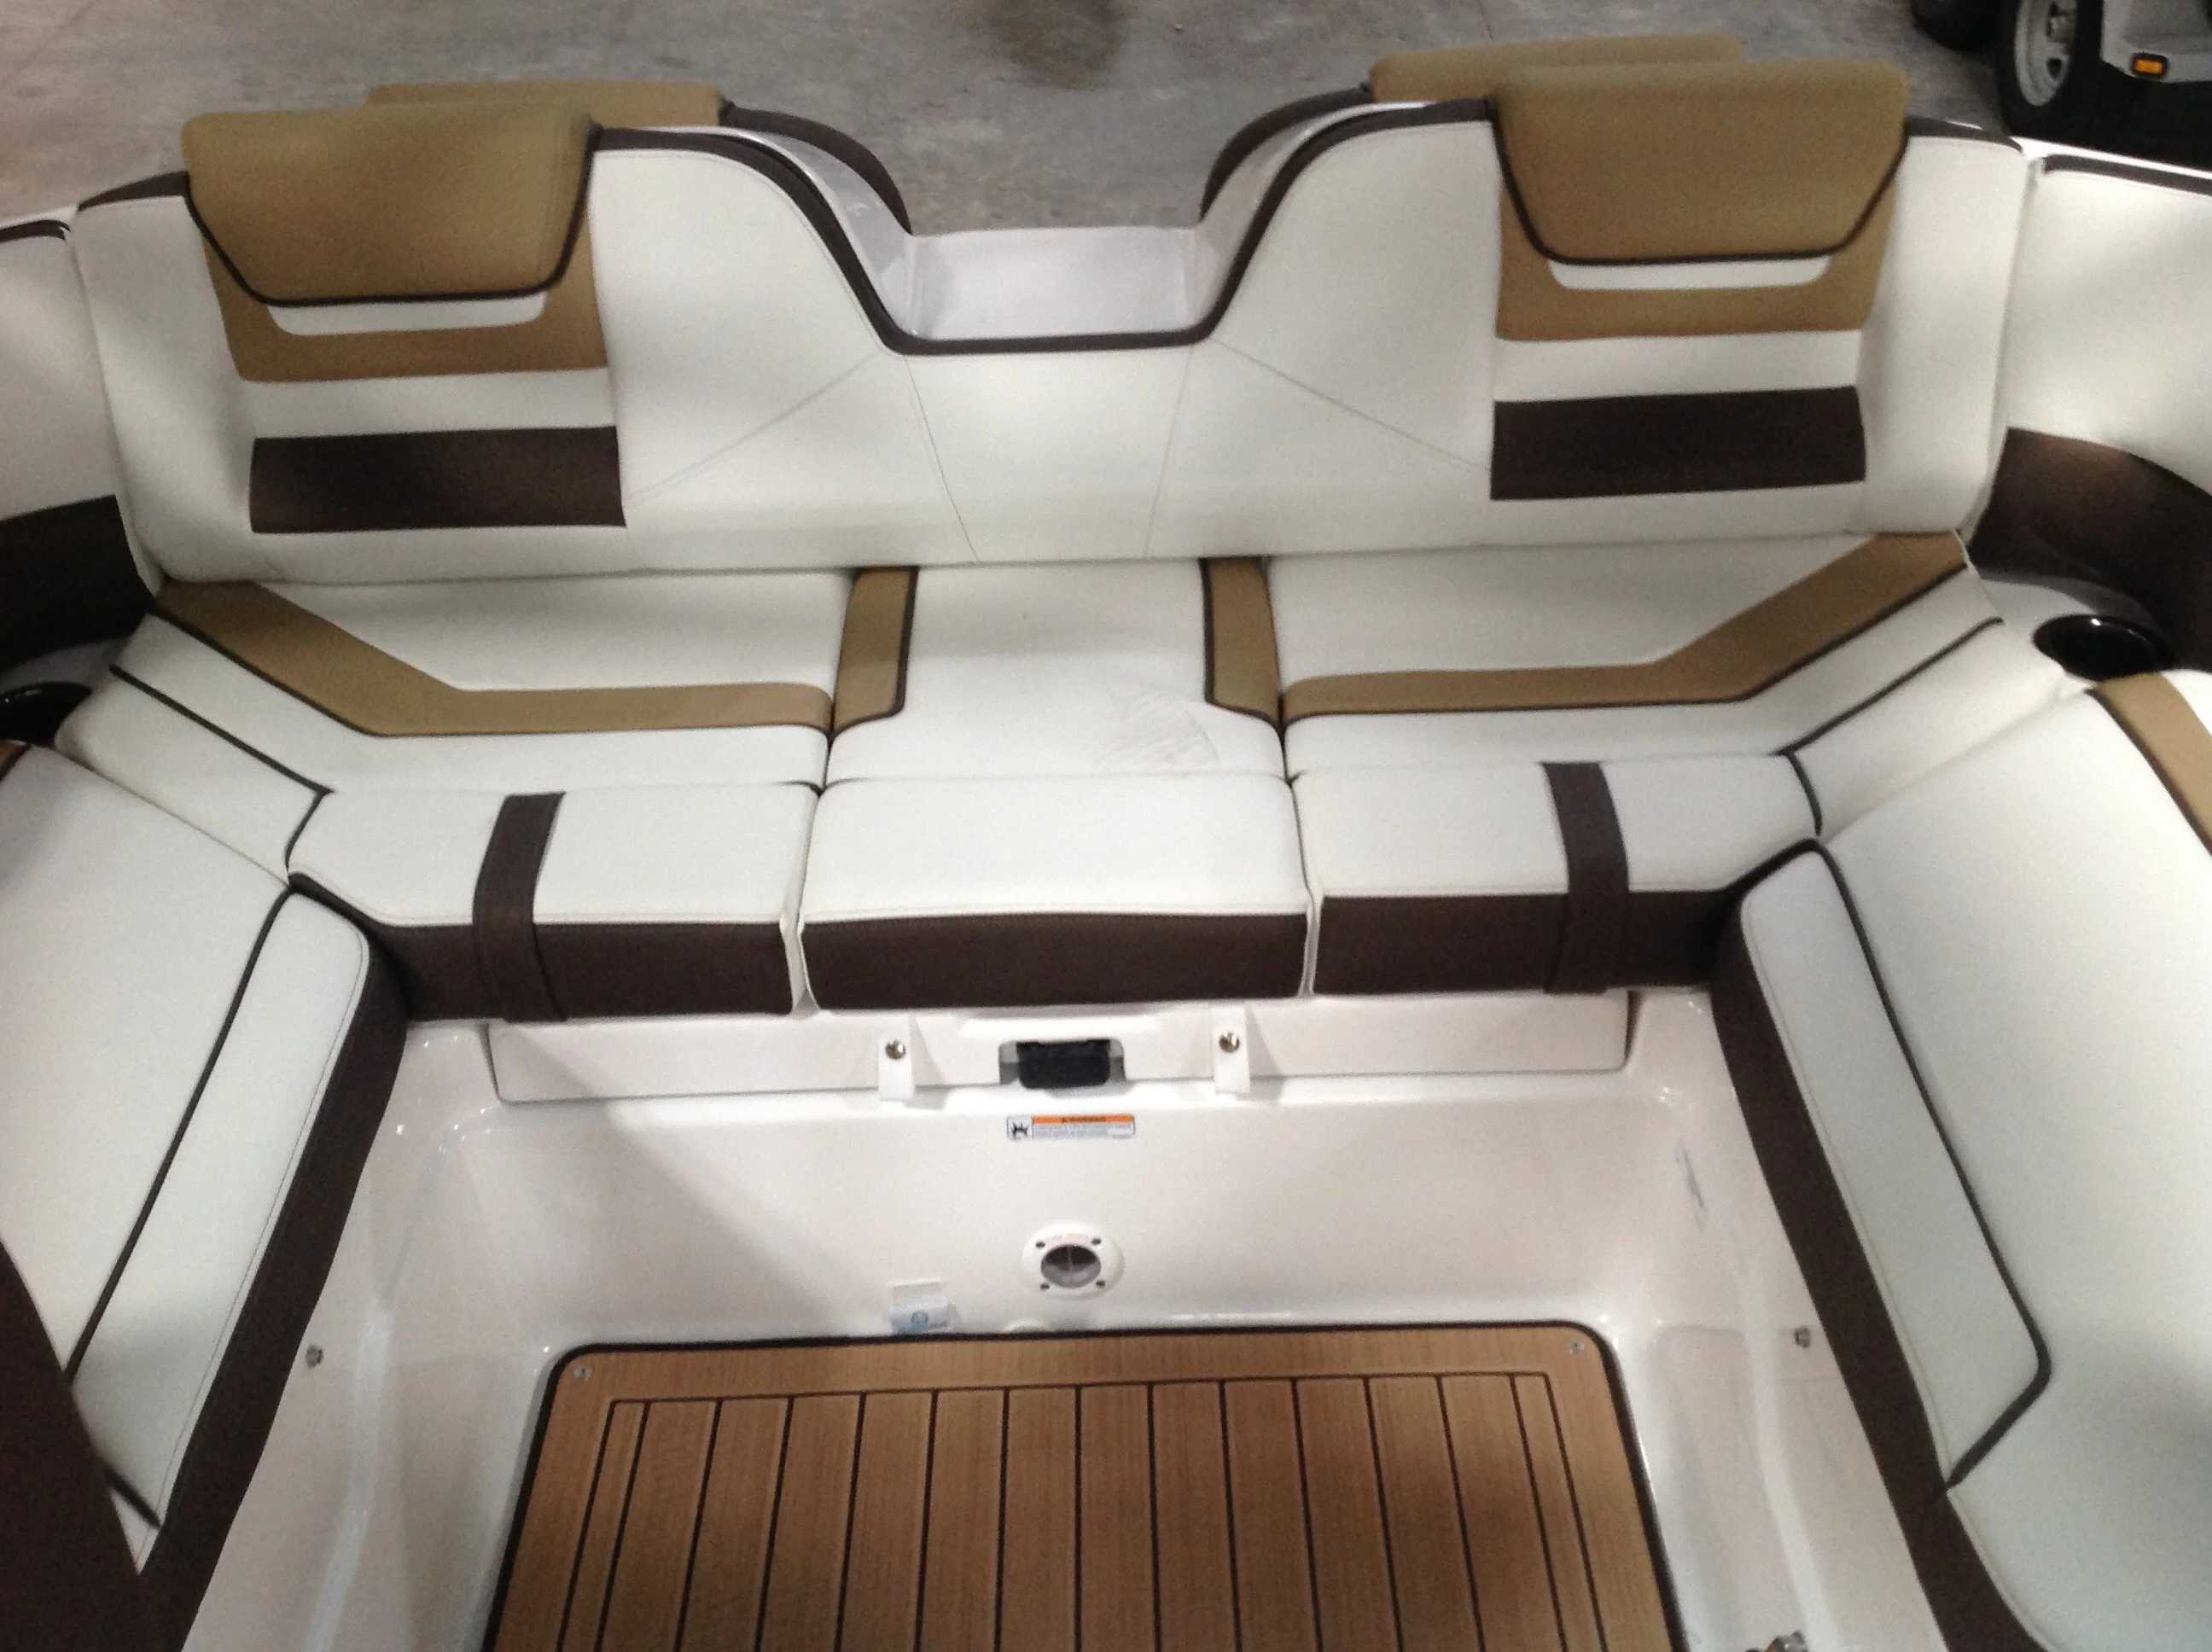 2021 Yamaha boat for sale, model of the boat is 212S & Image # 8 of 10